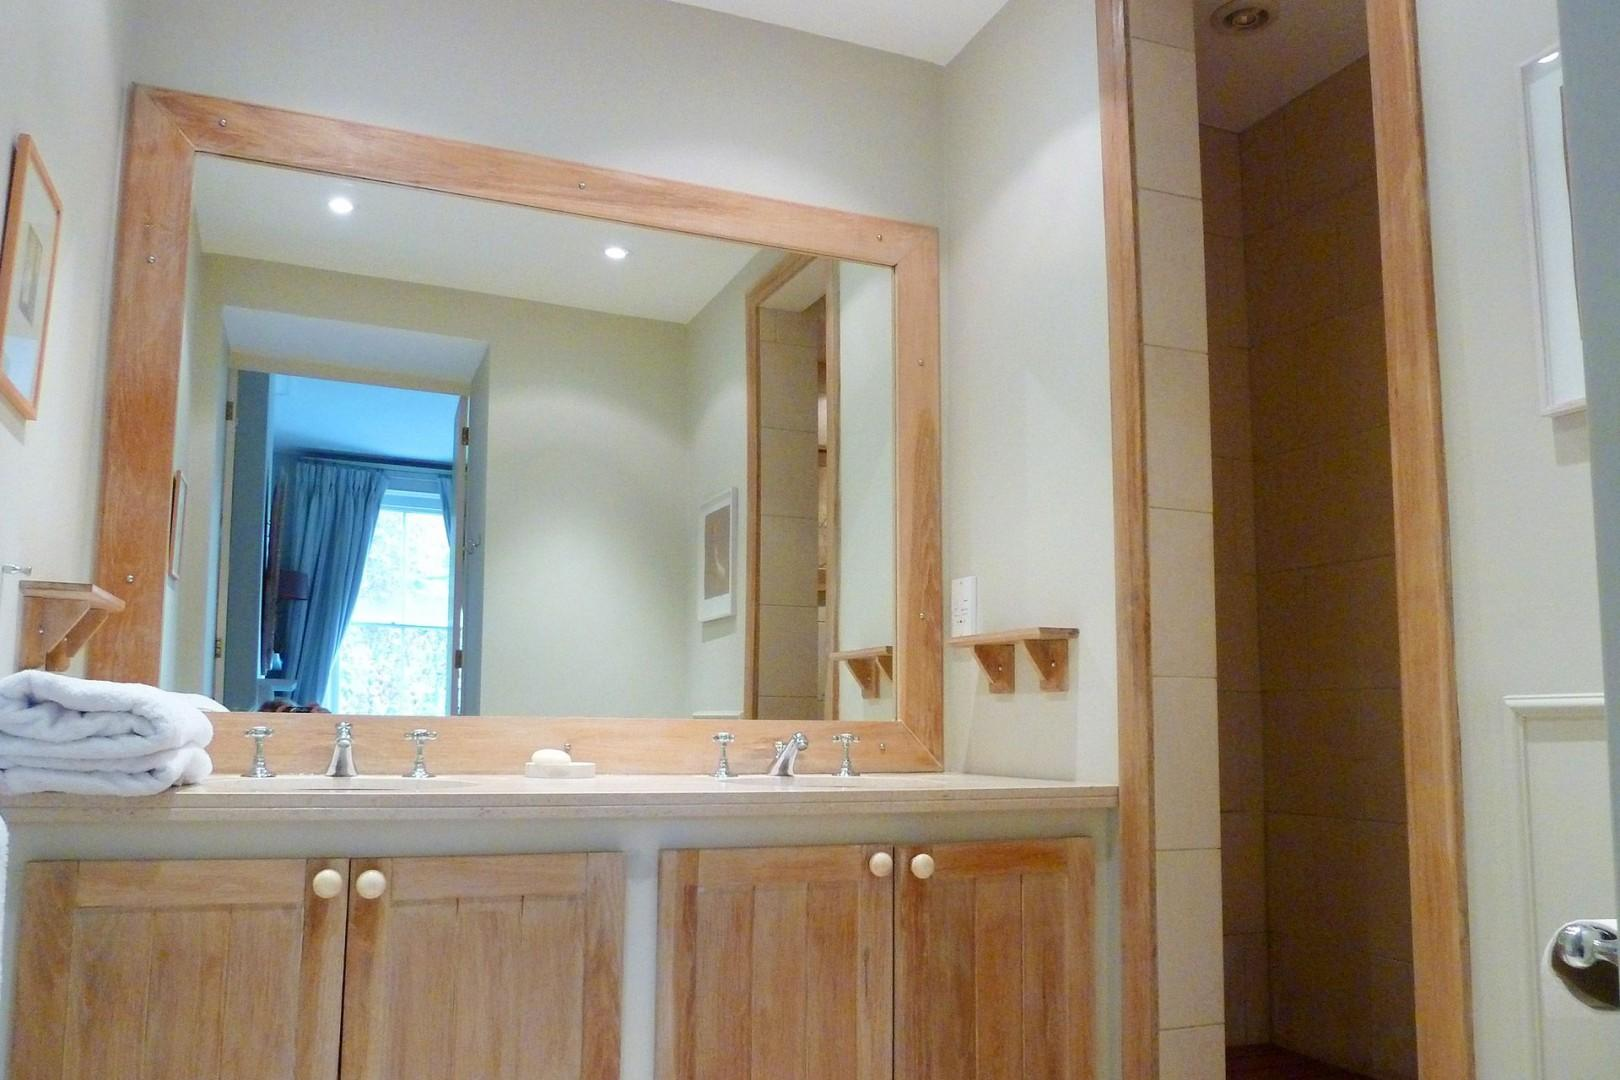 Step-in shower, double sink and toilet